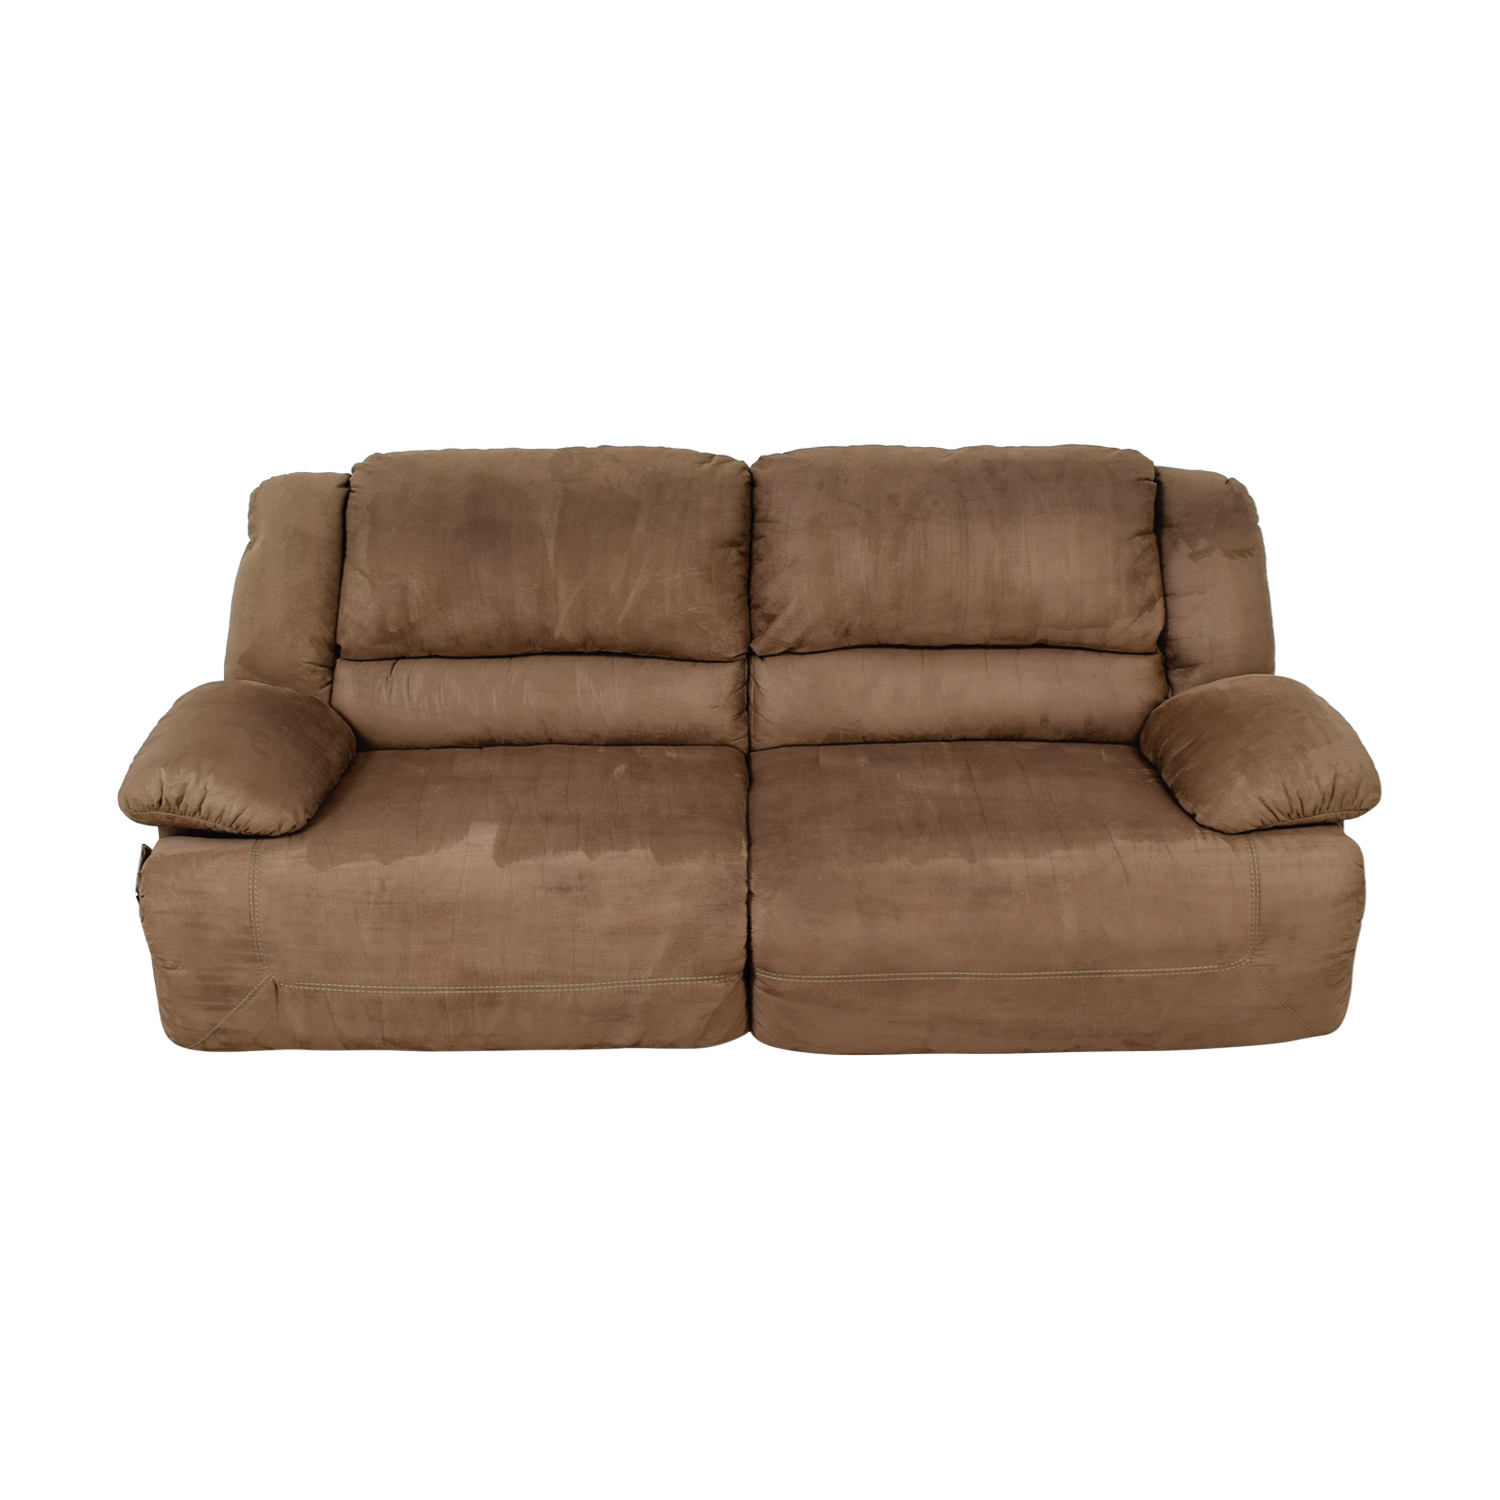 Ashley Furniture Ashley Furniture Mocha Reclining Sofa